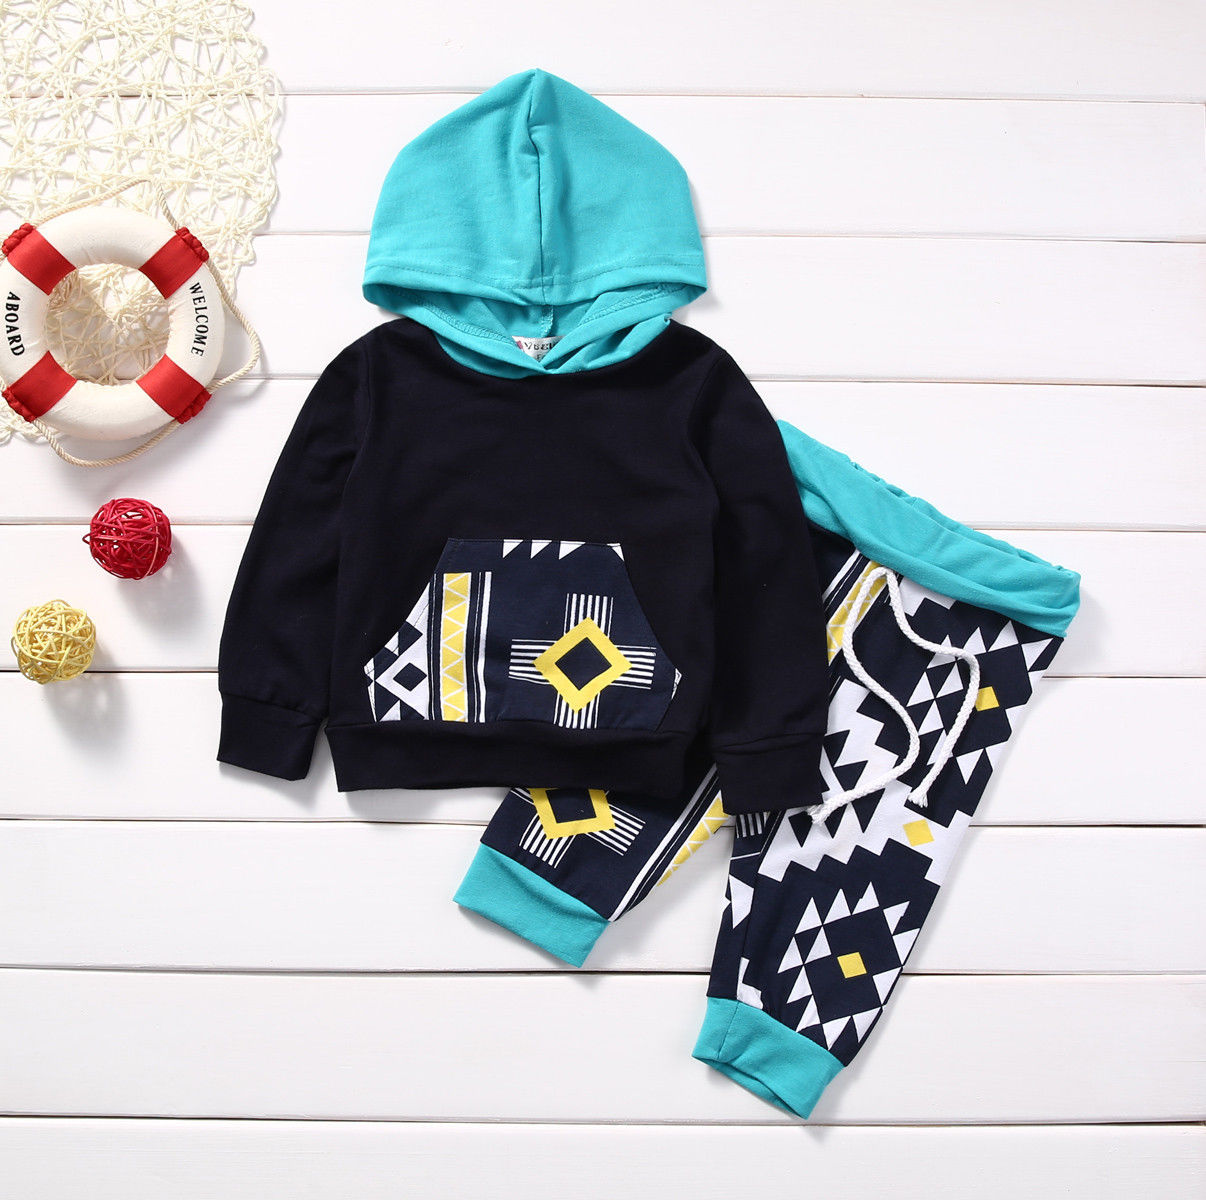 New Fashion Kids Clothes Infant Baby Boy Girl Long Sleeve Hoody Sweatshirt Tops Pant 2PCS Outfit Newborn Tracksuit 0-18M - KiddyLanes